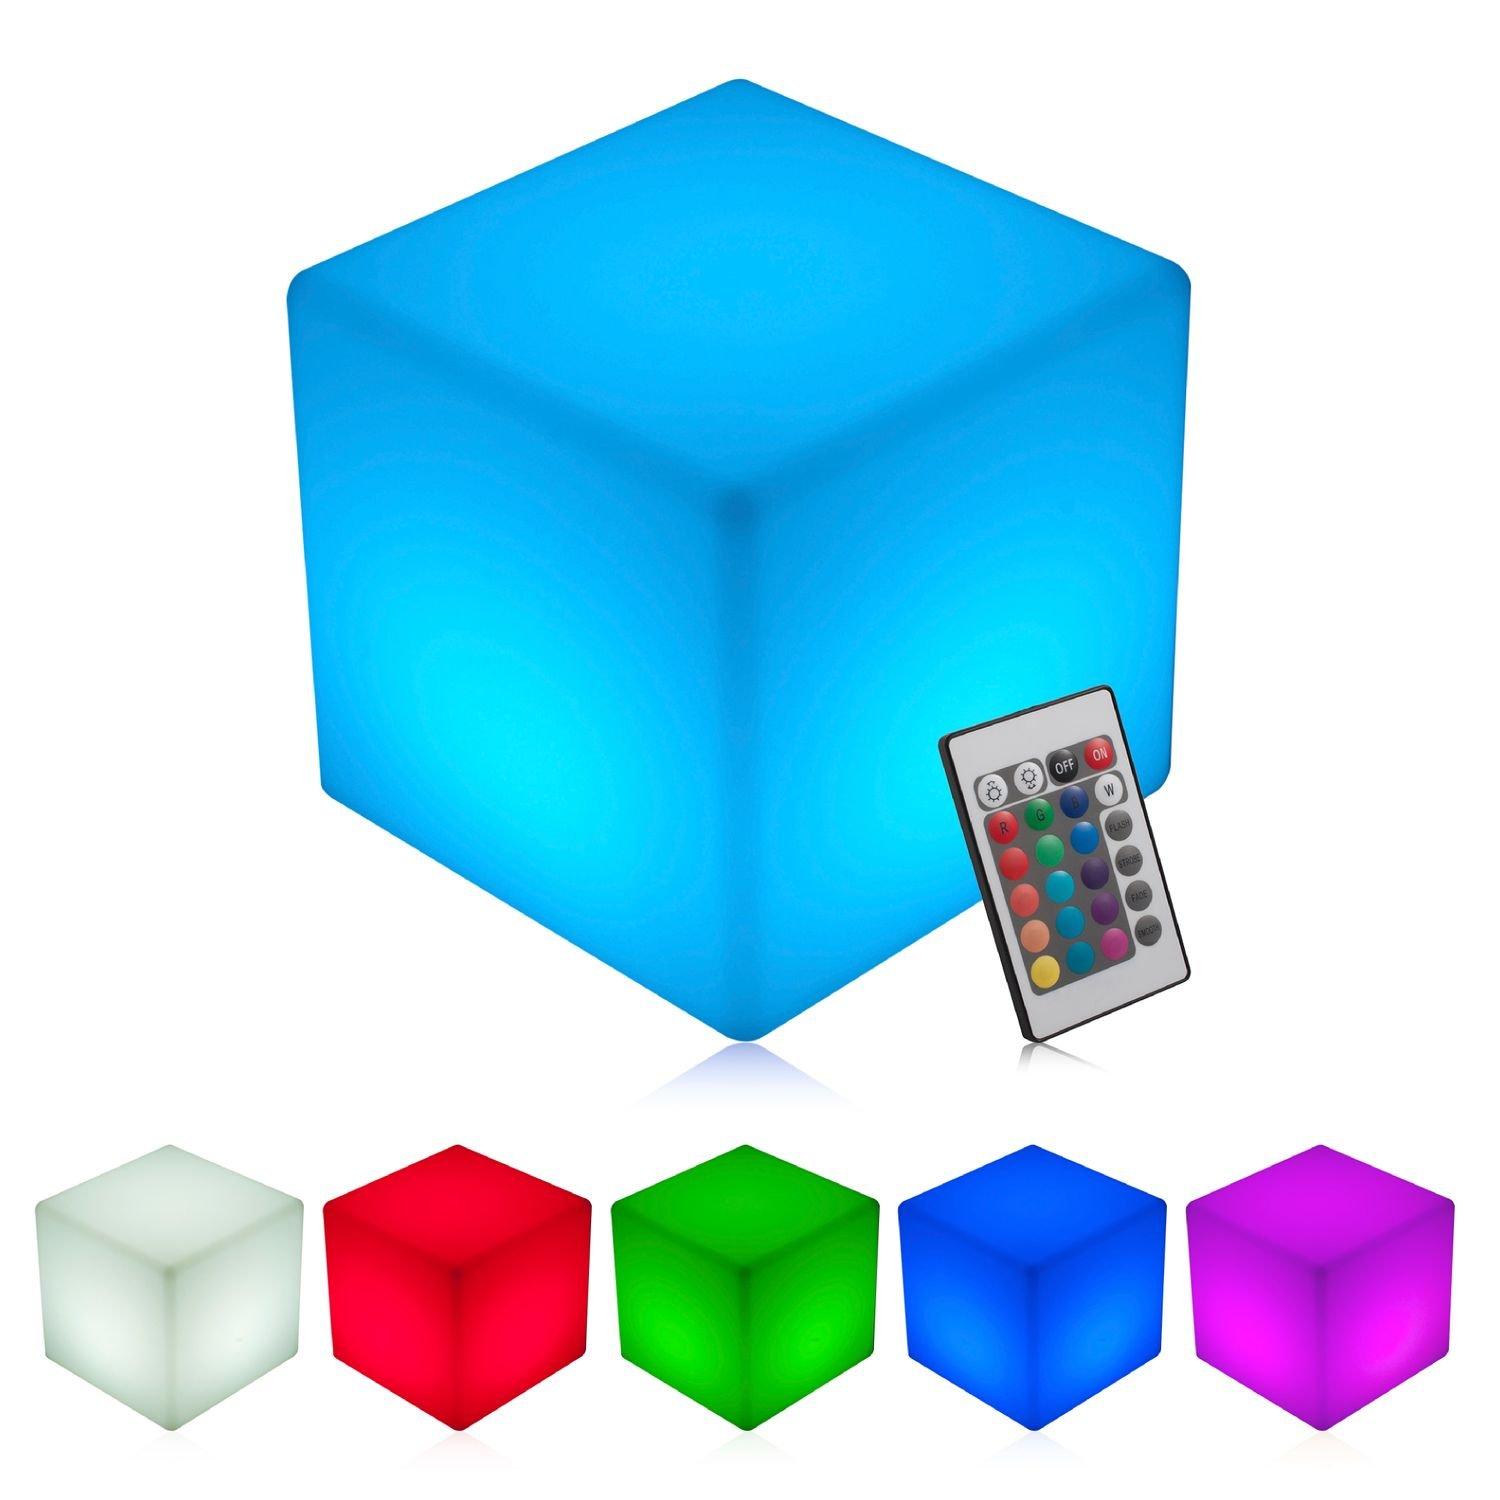 INNOKA 8-inch LED Cube Light, Waterproof & Cordless [Small Glow Cube] Rechargeable, RGB Color Changing Mood Lamp for Pool Light, Outdoor, Home, Bedroom, Patio, Party, Decorative Lighting